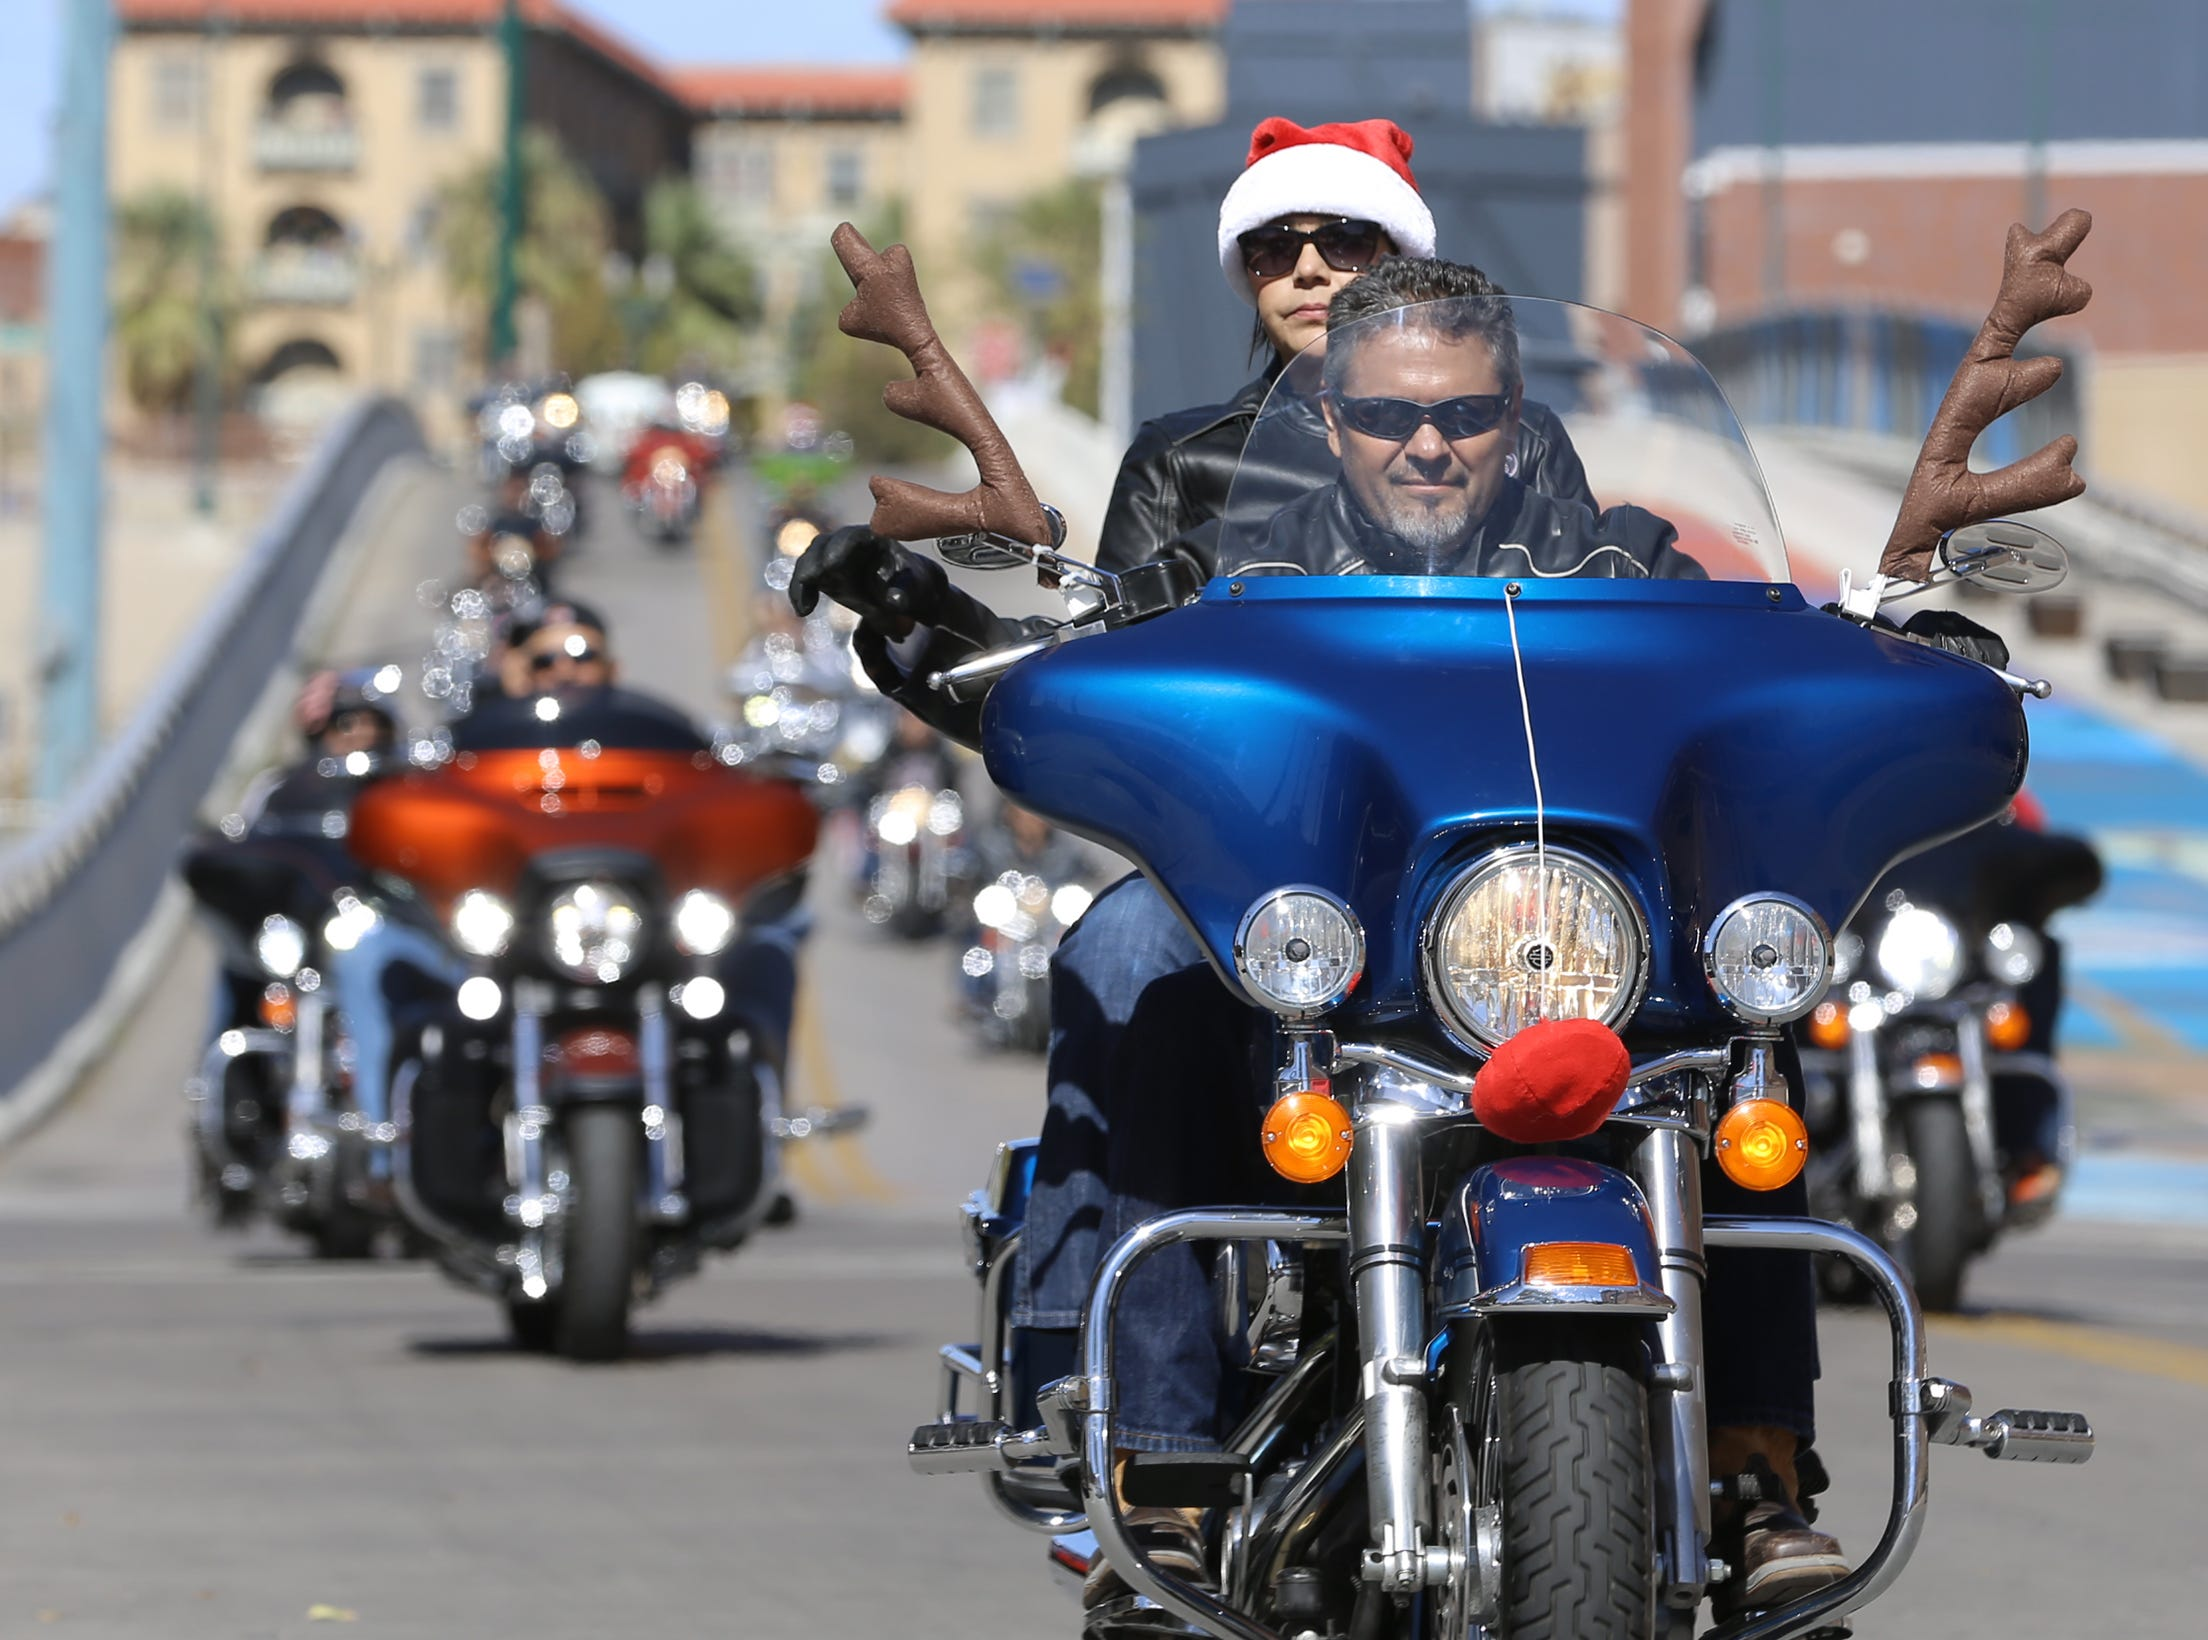 Thousands of bikers with the El Paso Motorcycle Coalition strapped toys to their bikes and rode through the streets of El Paso Sunday to bring Christmas to poor children. The miles-long caravan of bike stretched miles as they rode from Sunland Park, New Mexico to the El Paso County Coliseum.